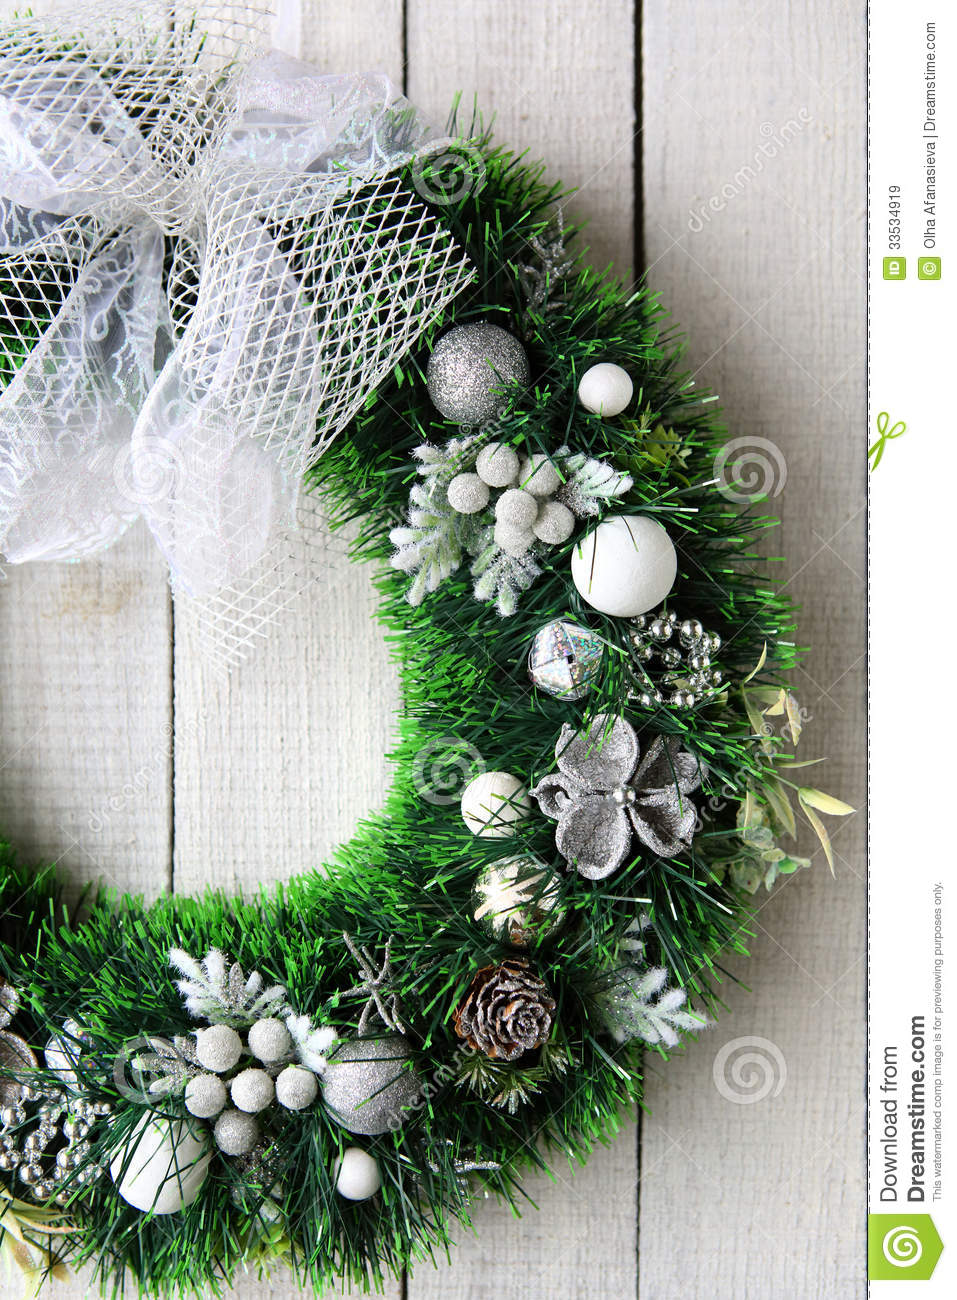 Christmas Wreath On White Door Royalty Free Stock Images  Image 33534919